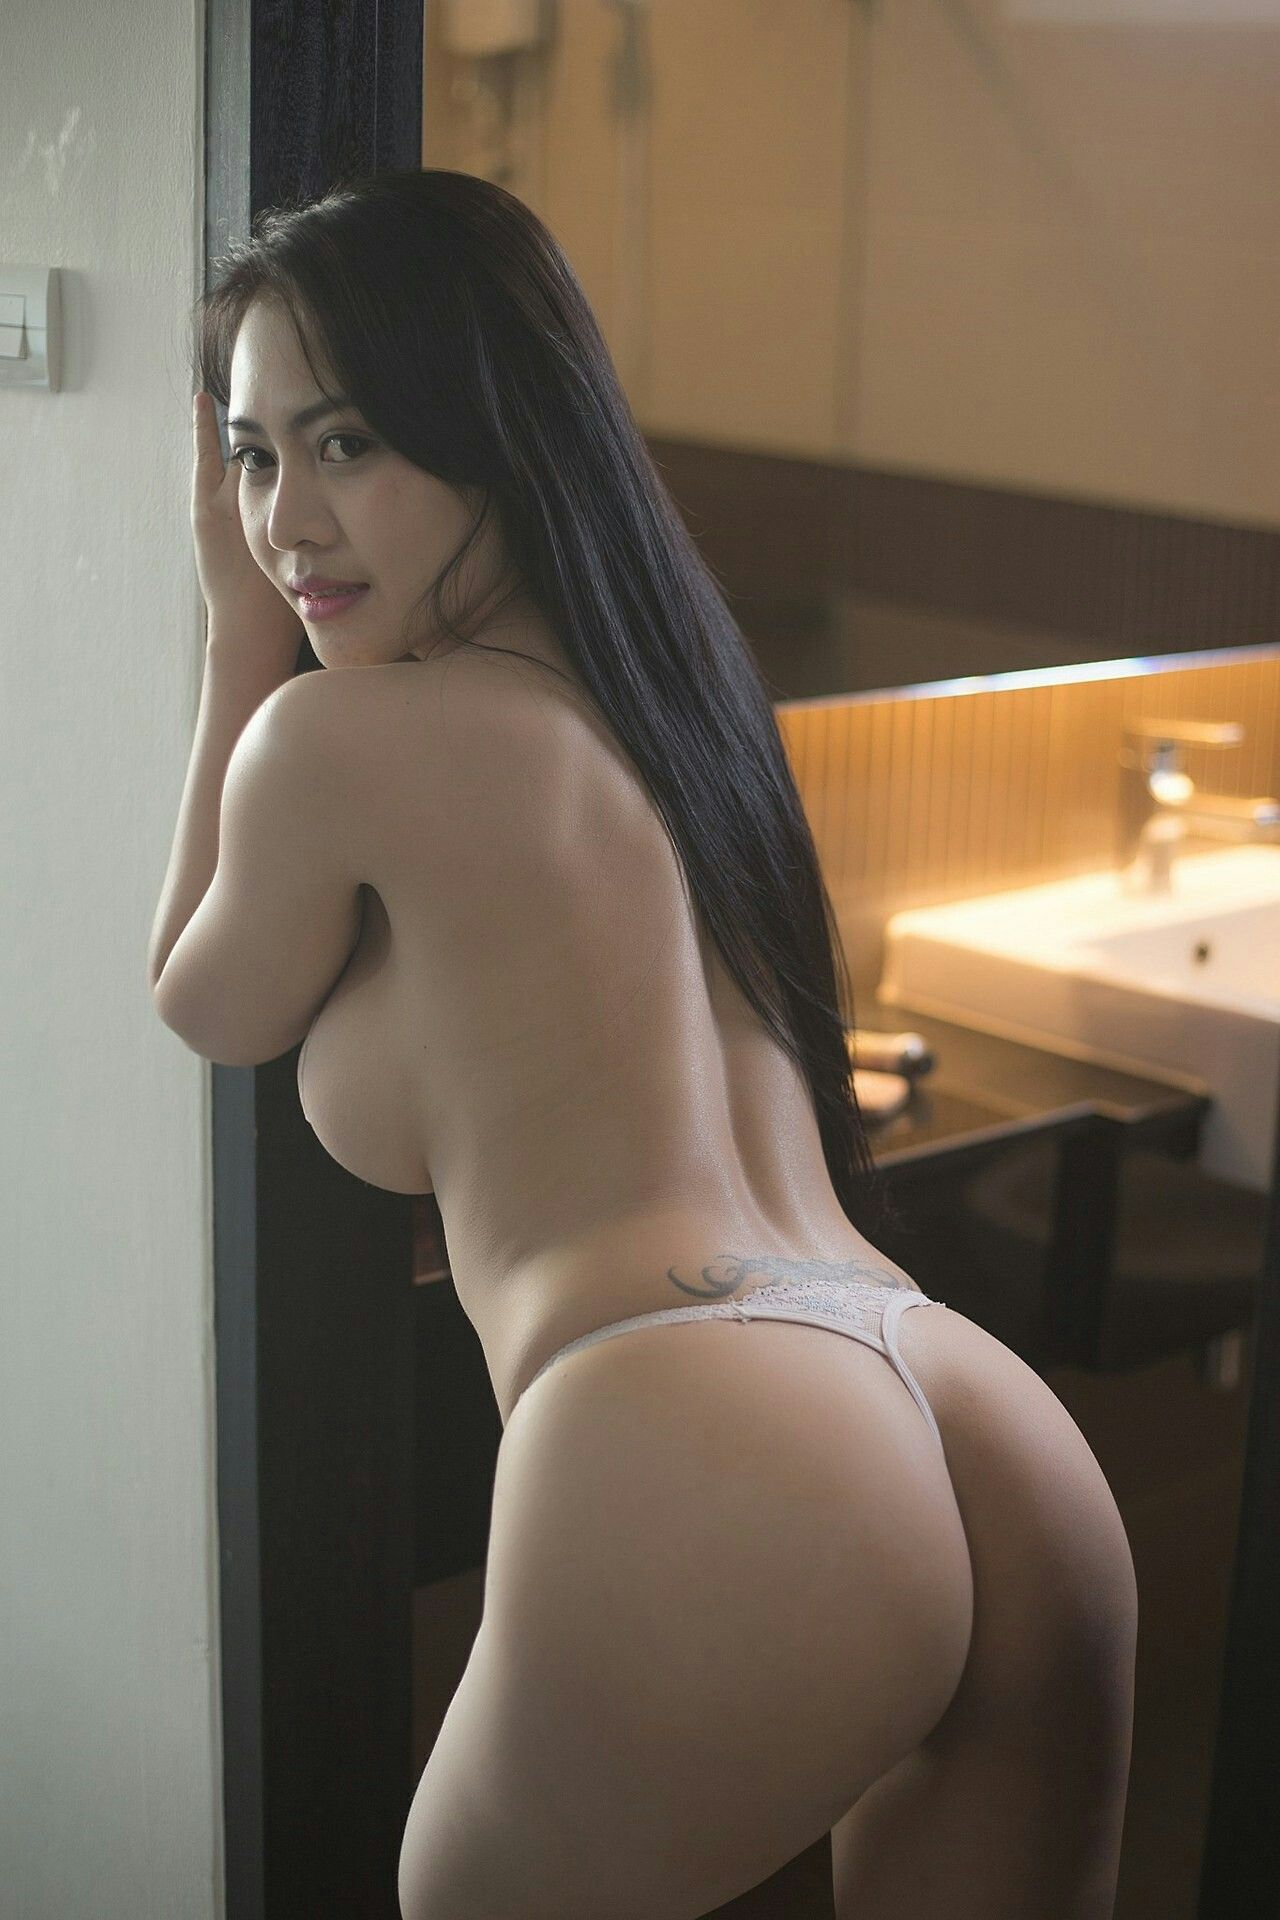 hard-core-indonesia-naked-gif-wanna-see-peeing